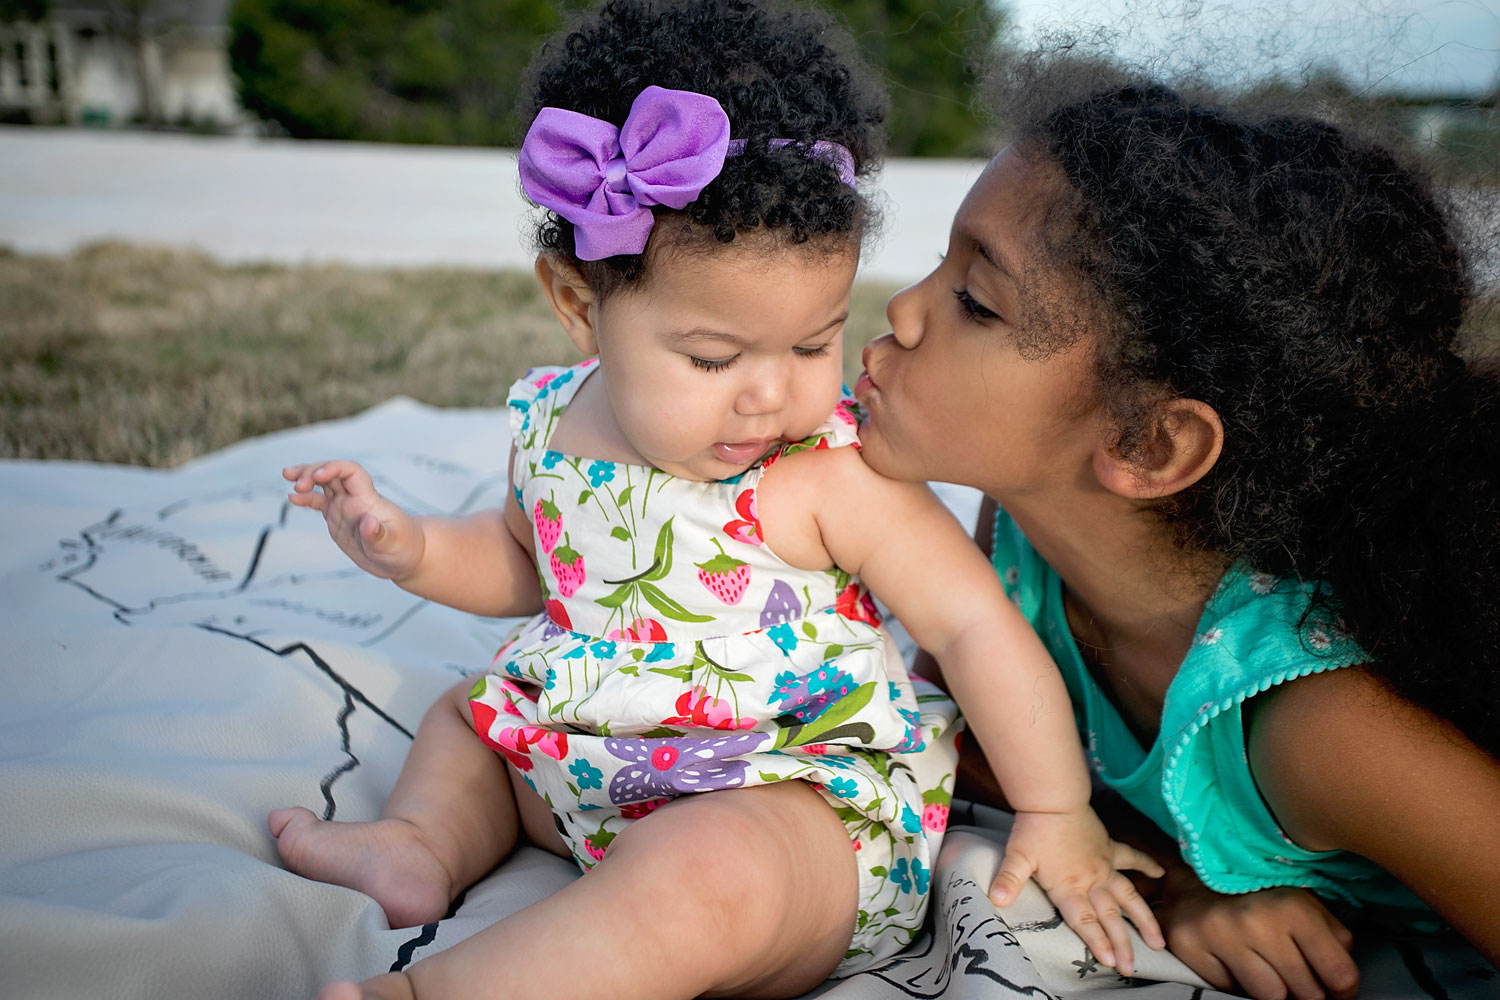 A big sister and baby sister sharing a kiss